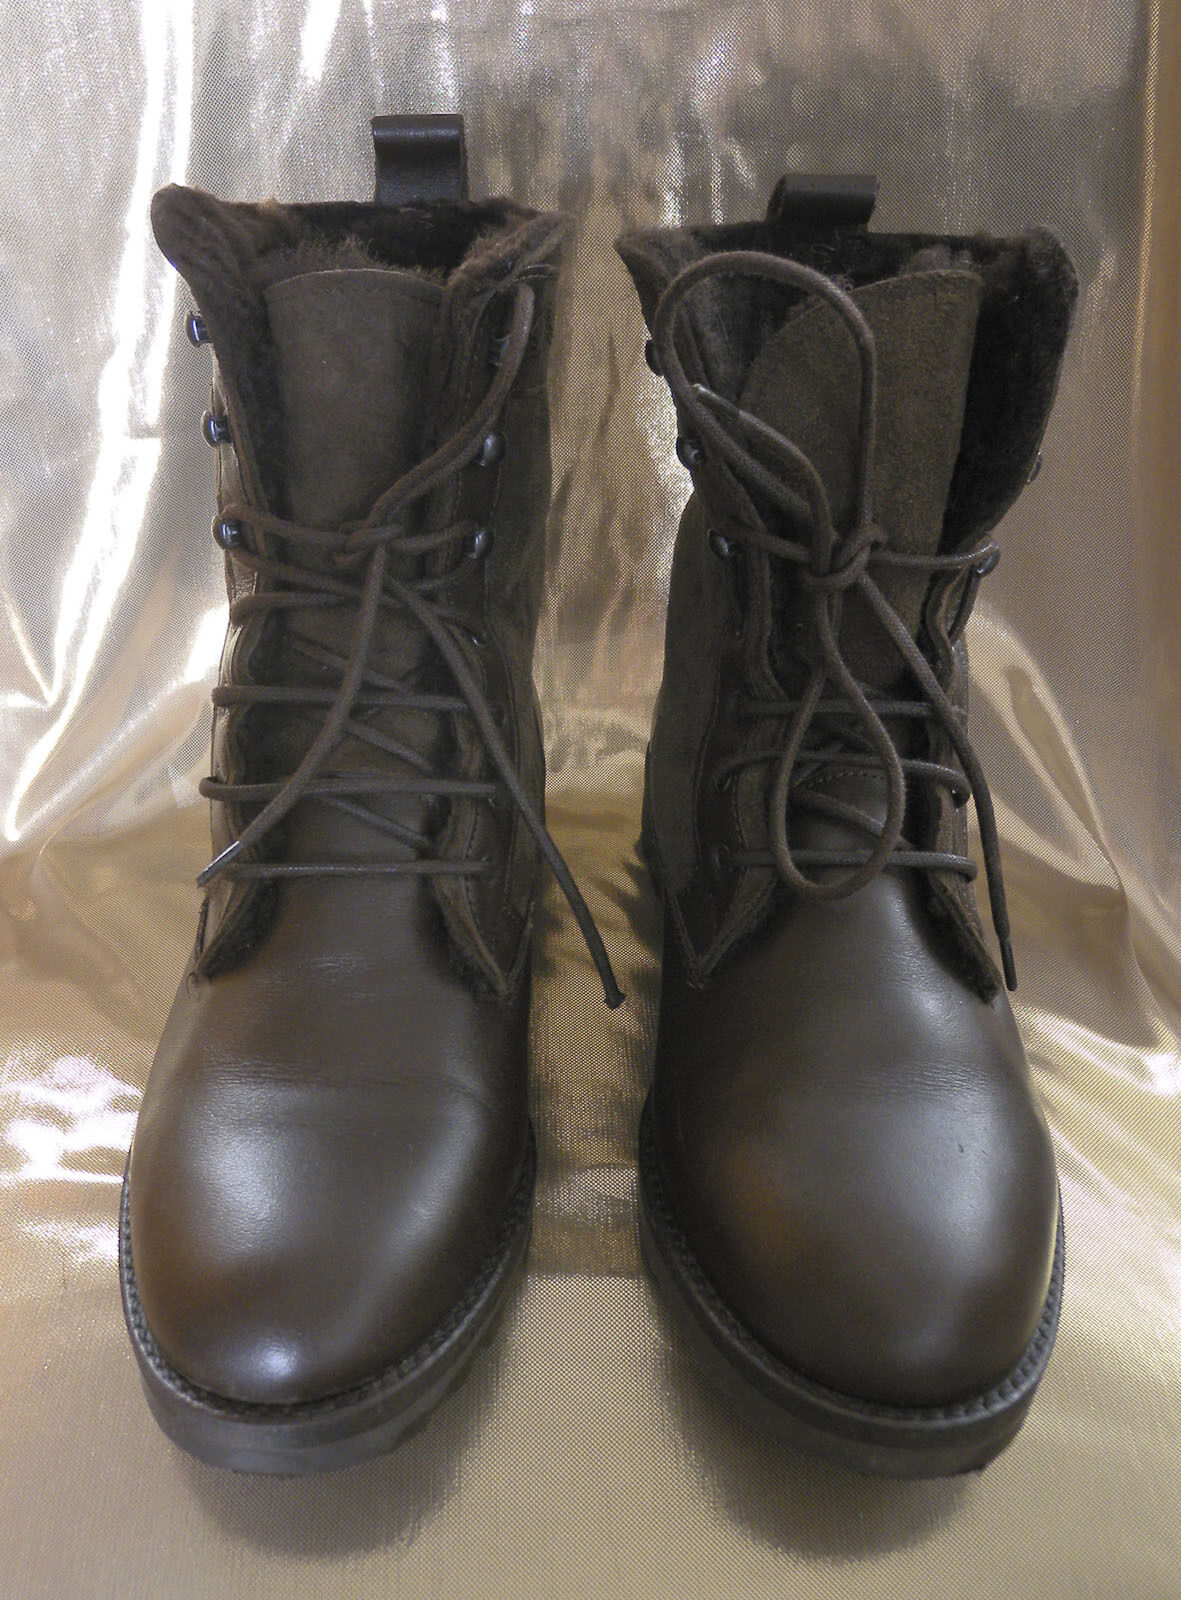 NEW  Leather Sued Lace Up Boots, Sheep fur inside. Size 6